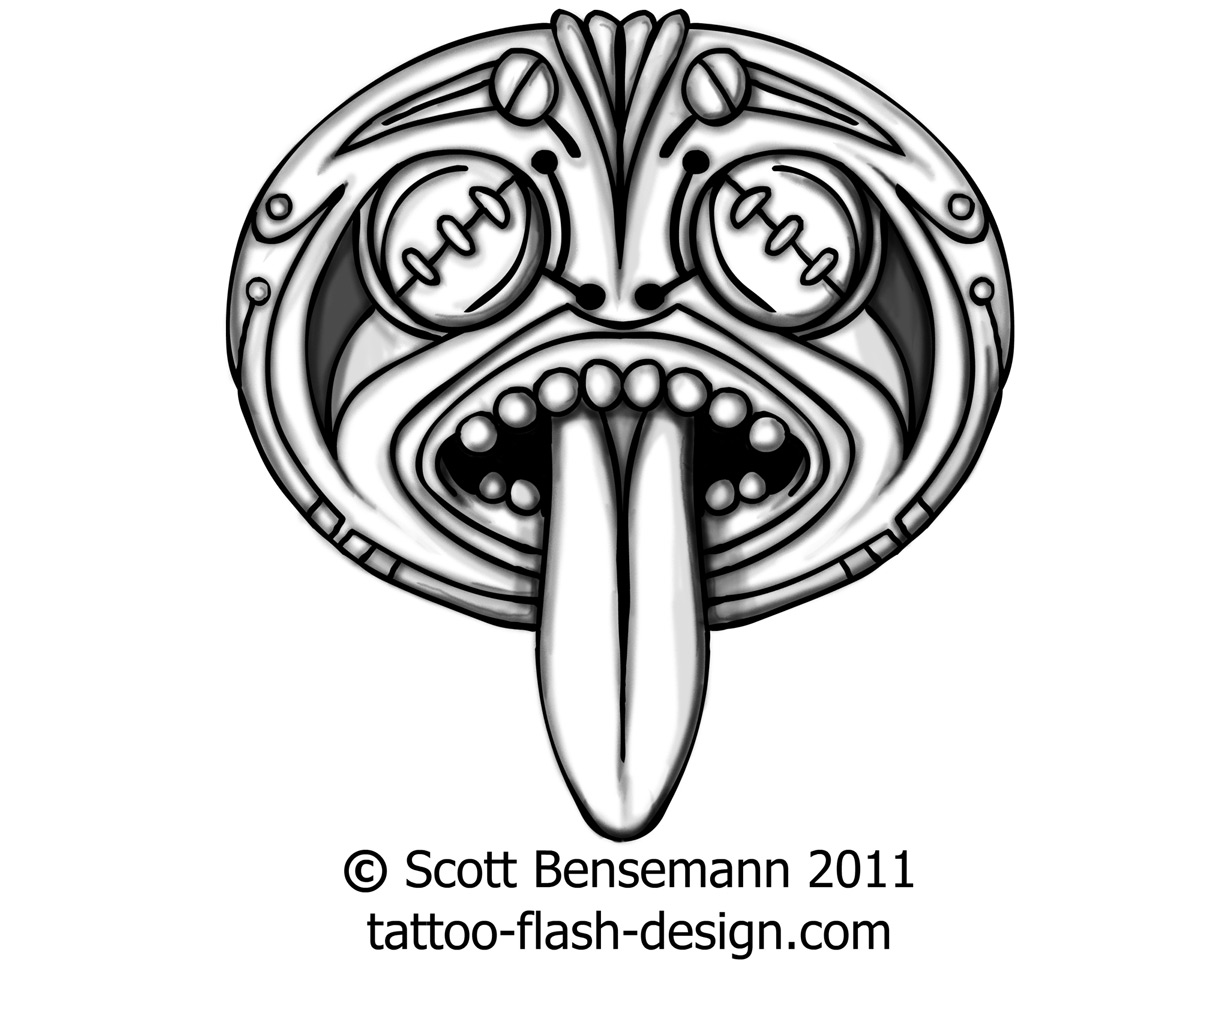 1205x1020 Tribal Owl Face Tattoo Design In 2017 Real Photo, Pictures